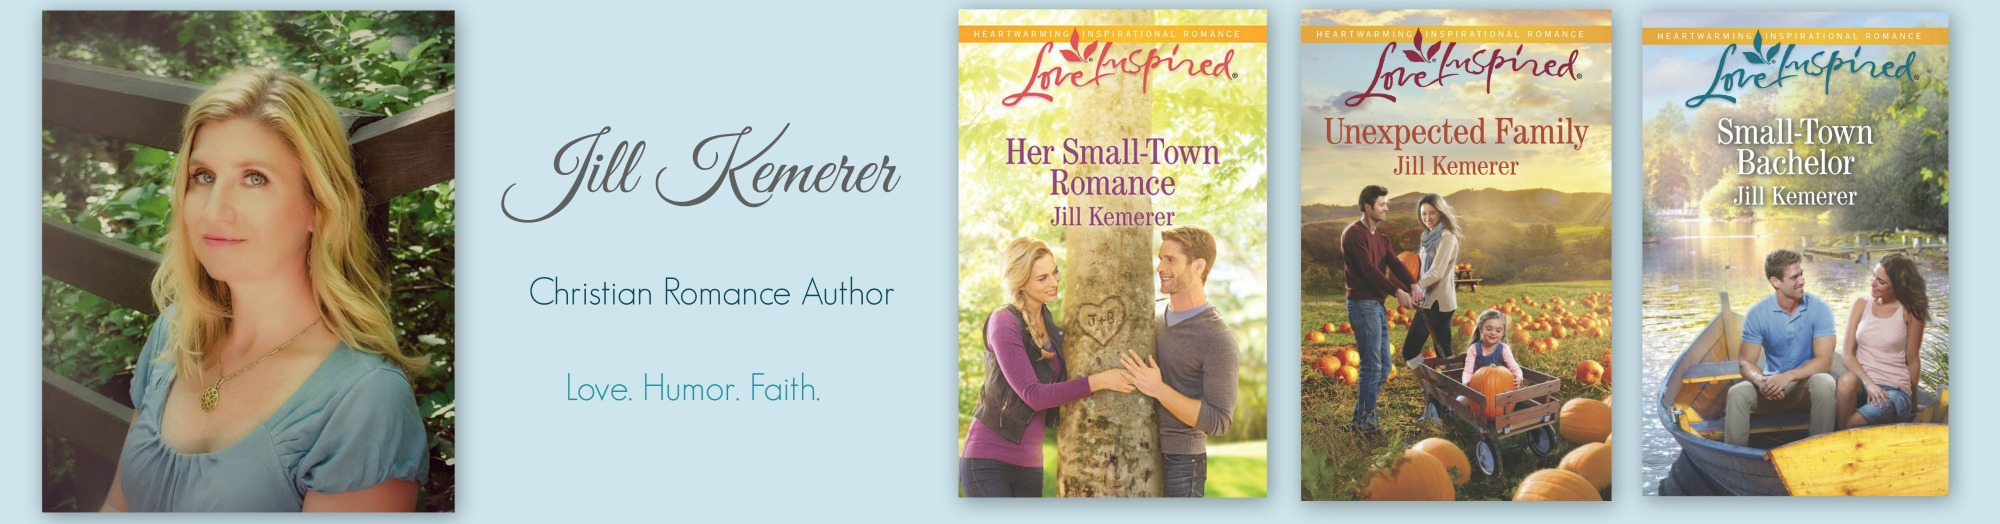 Jill Kemerer | Christian Romance Author